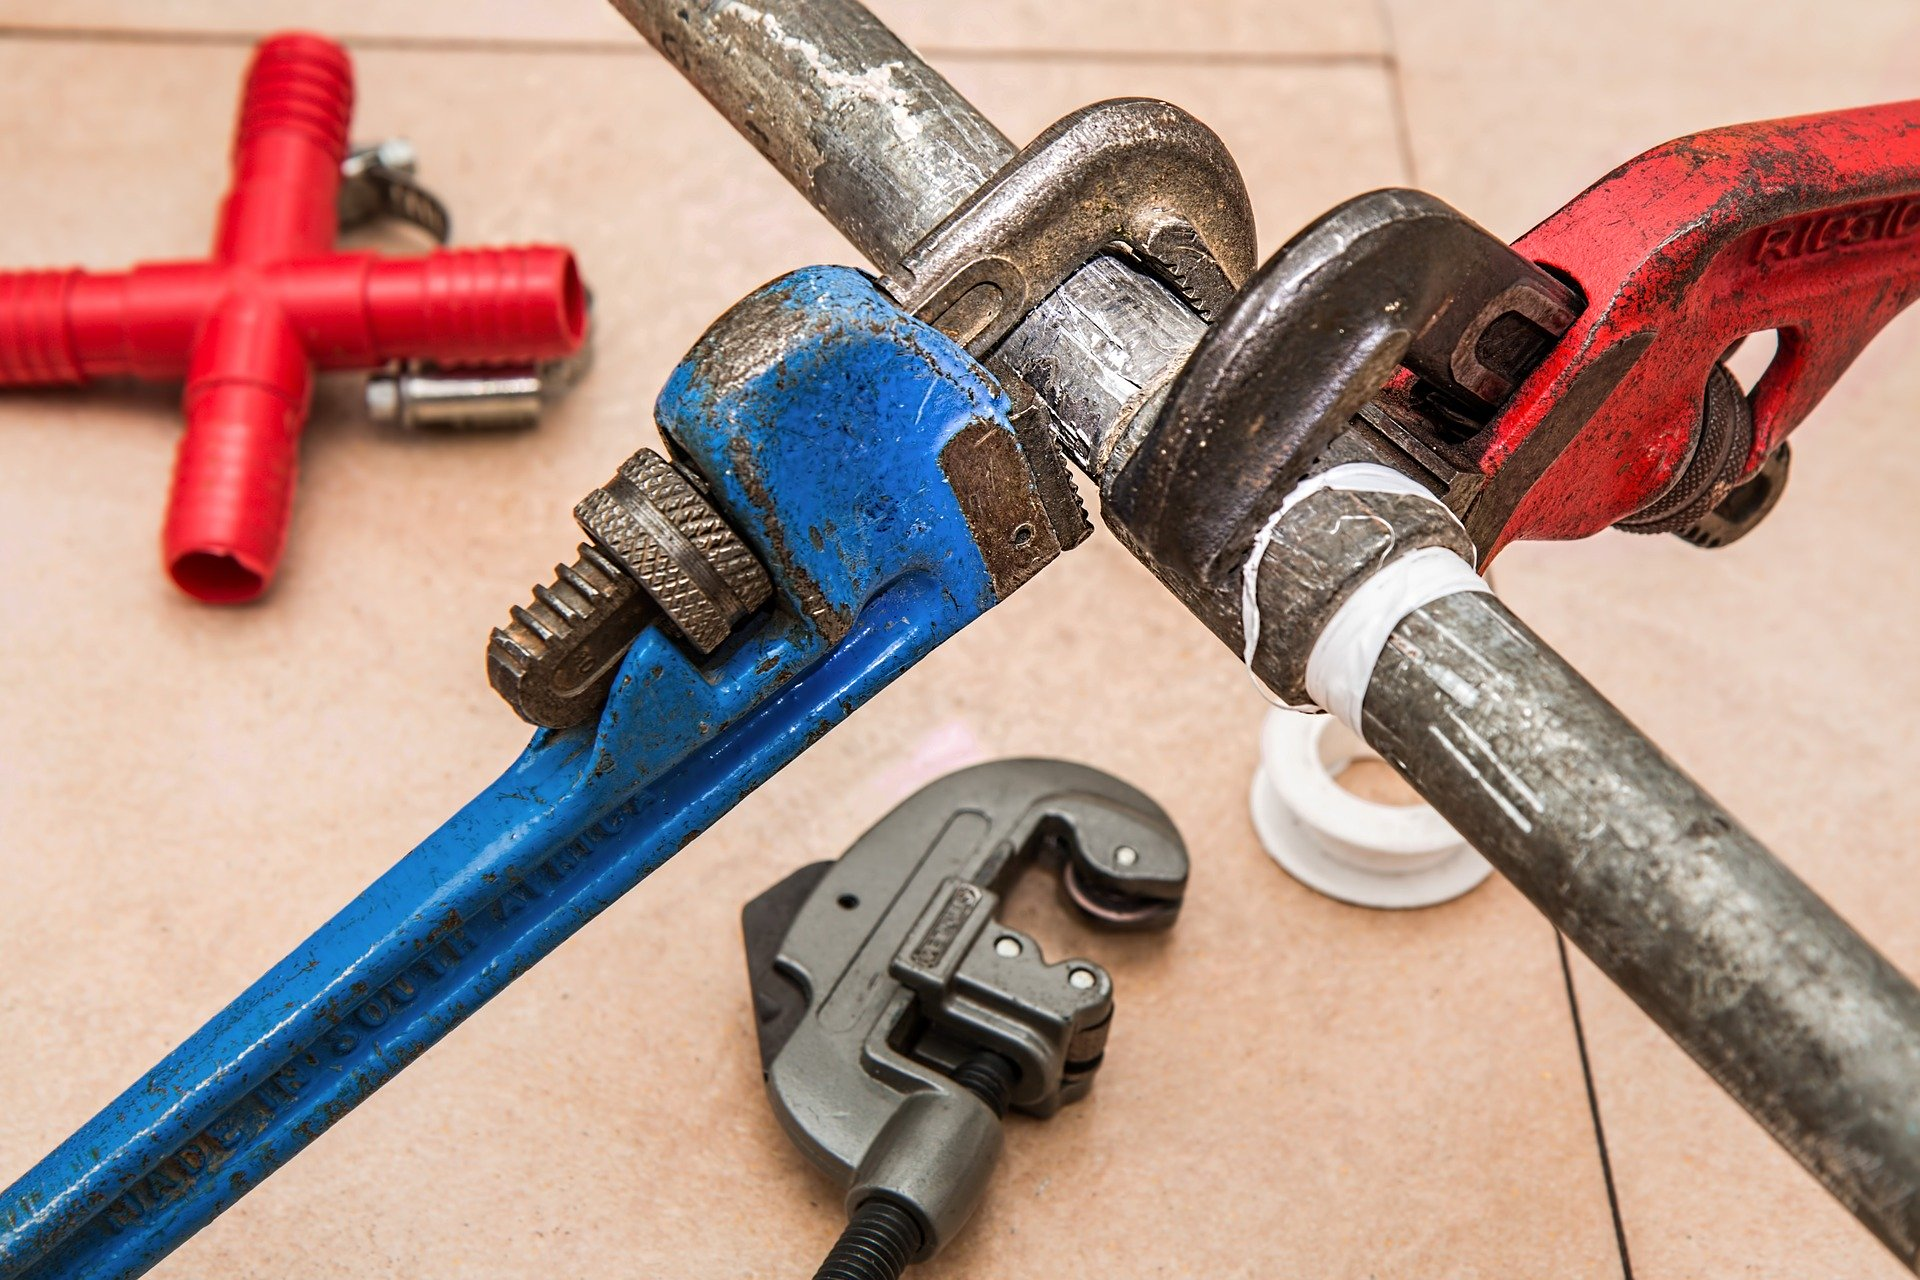 Plumbing Basics for Landlords: Piping Materials